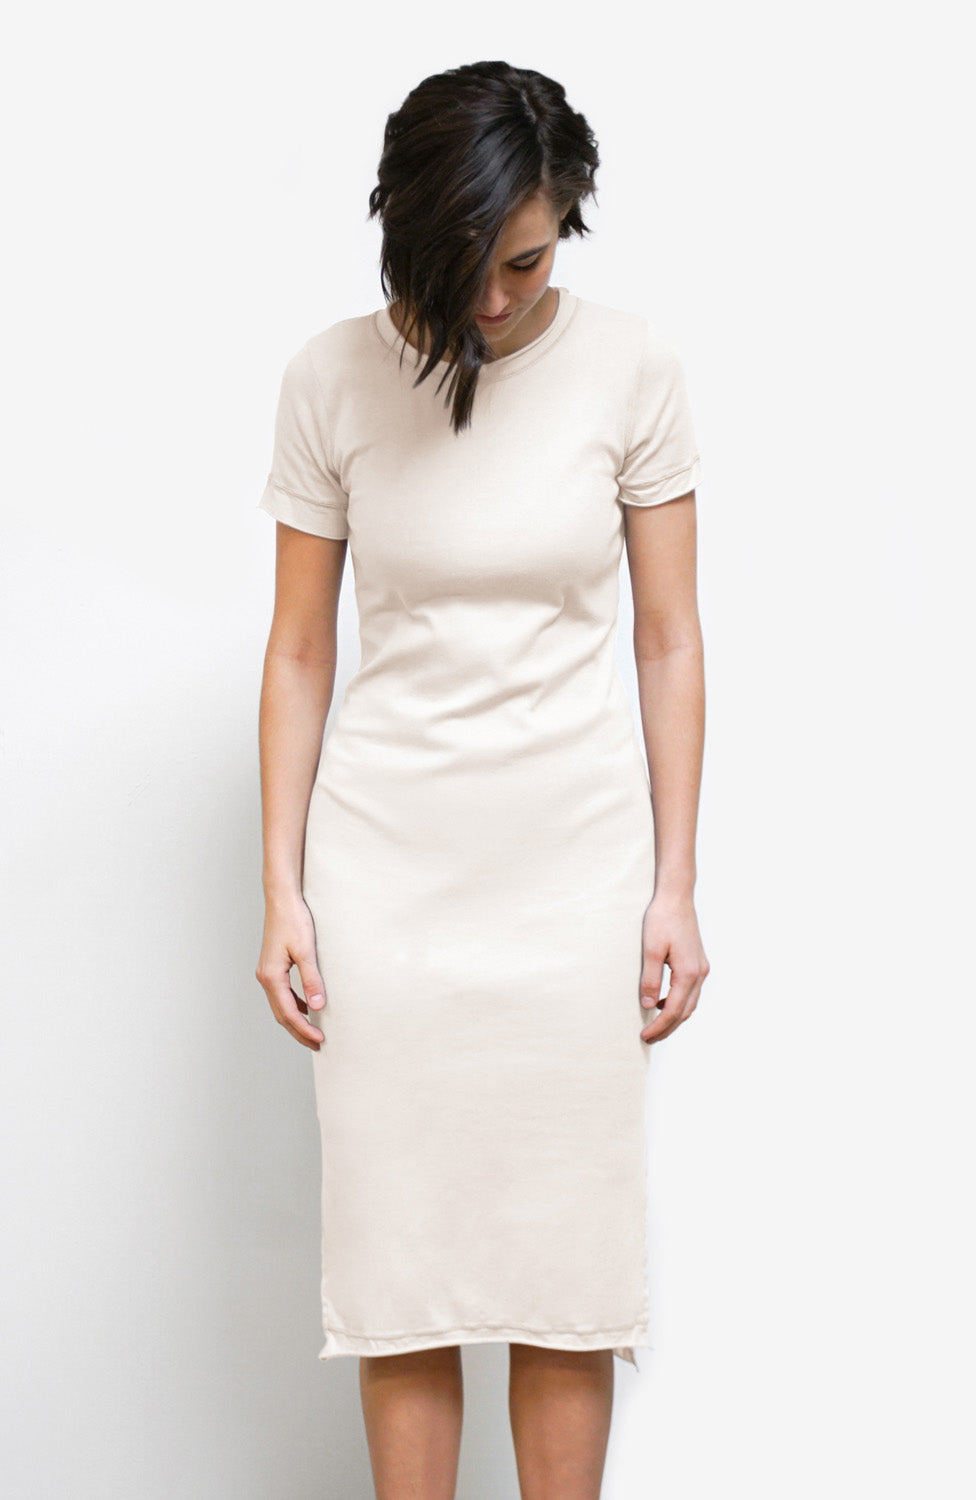 Alabama Chanin USA-Made Short Sleeve Dress with Side Slits in Natural